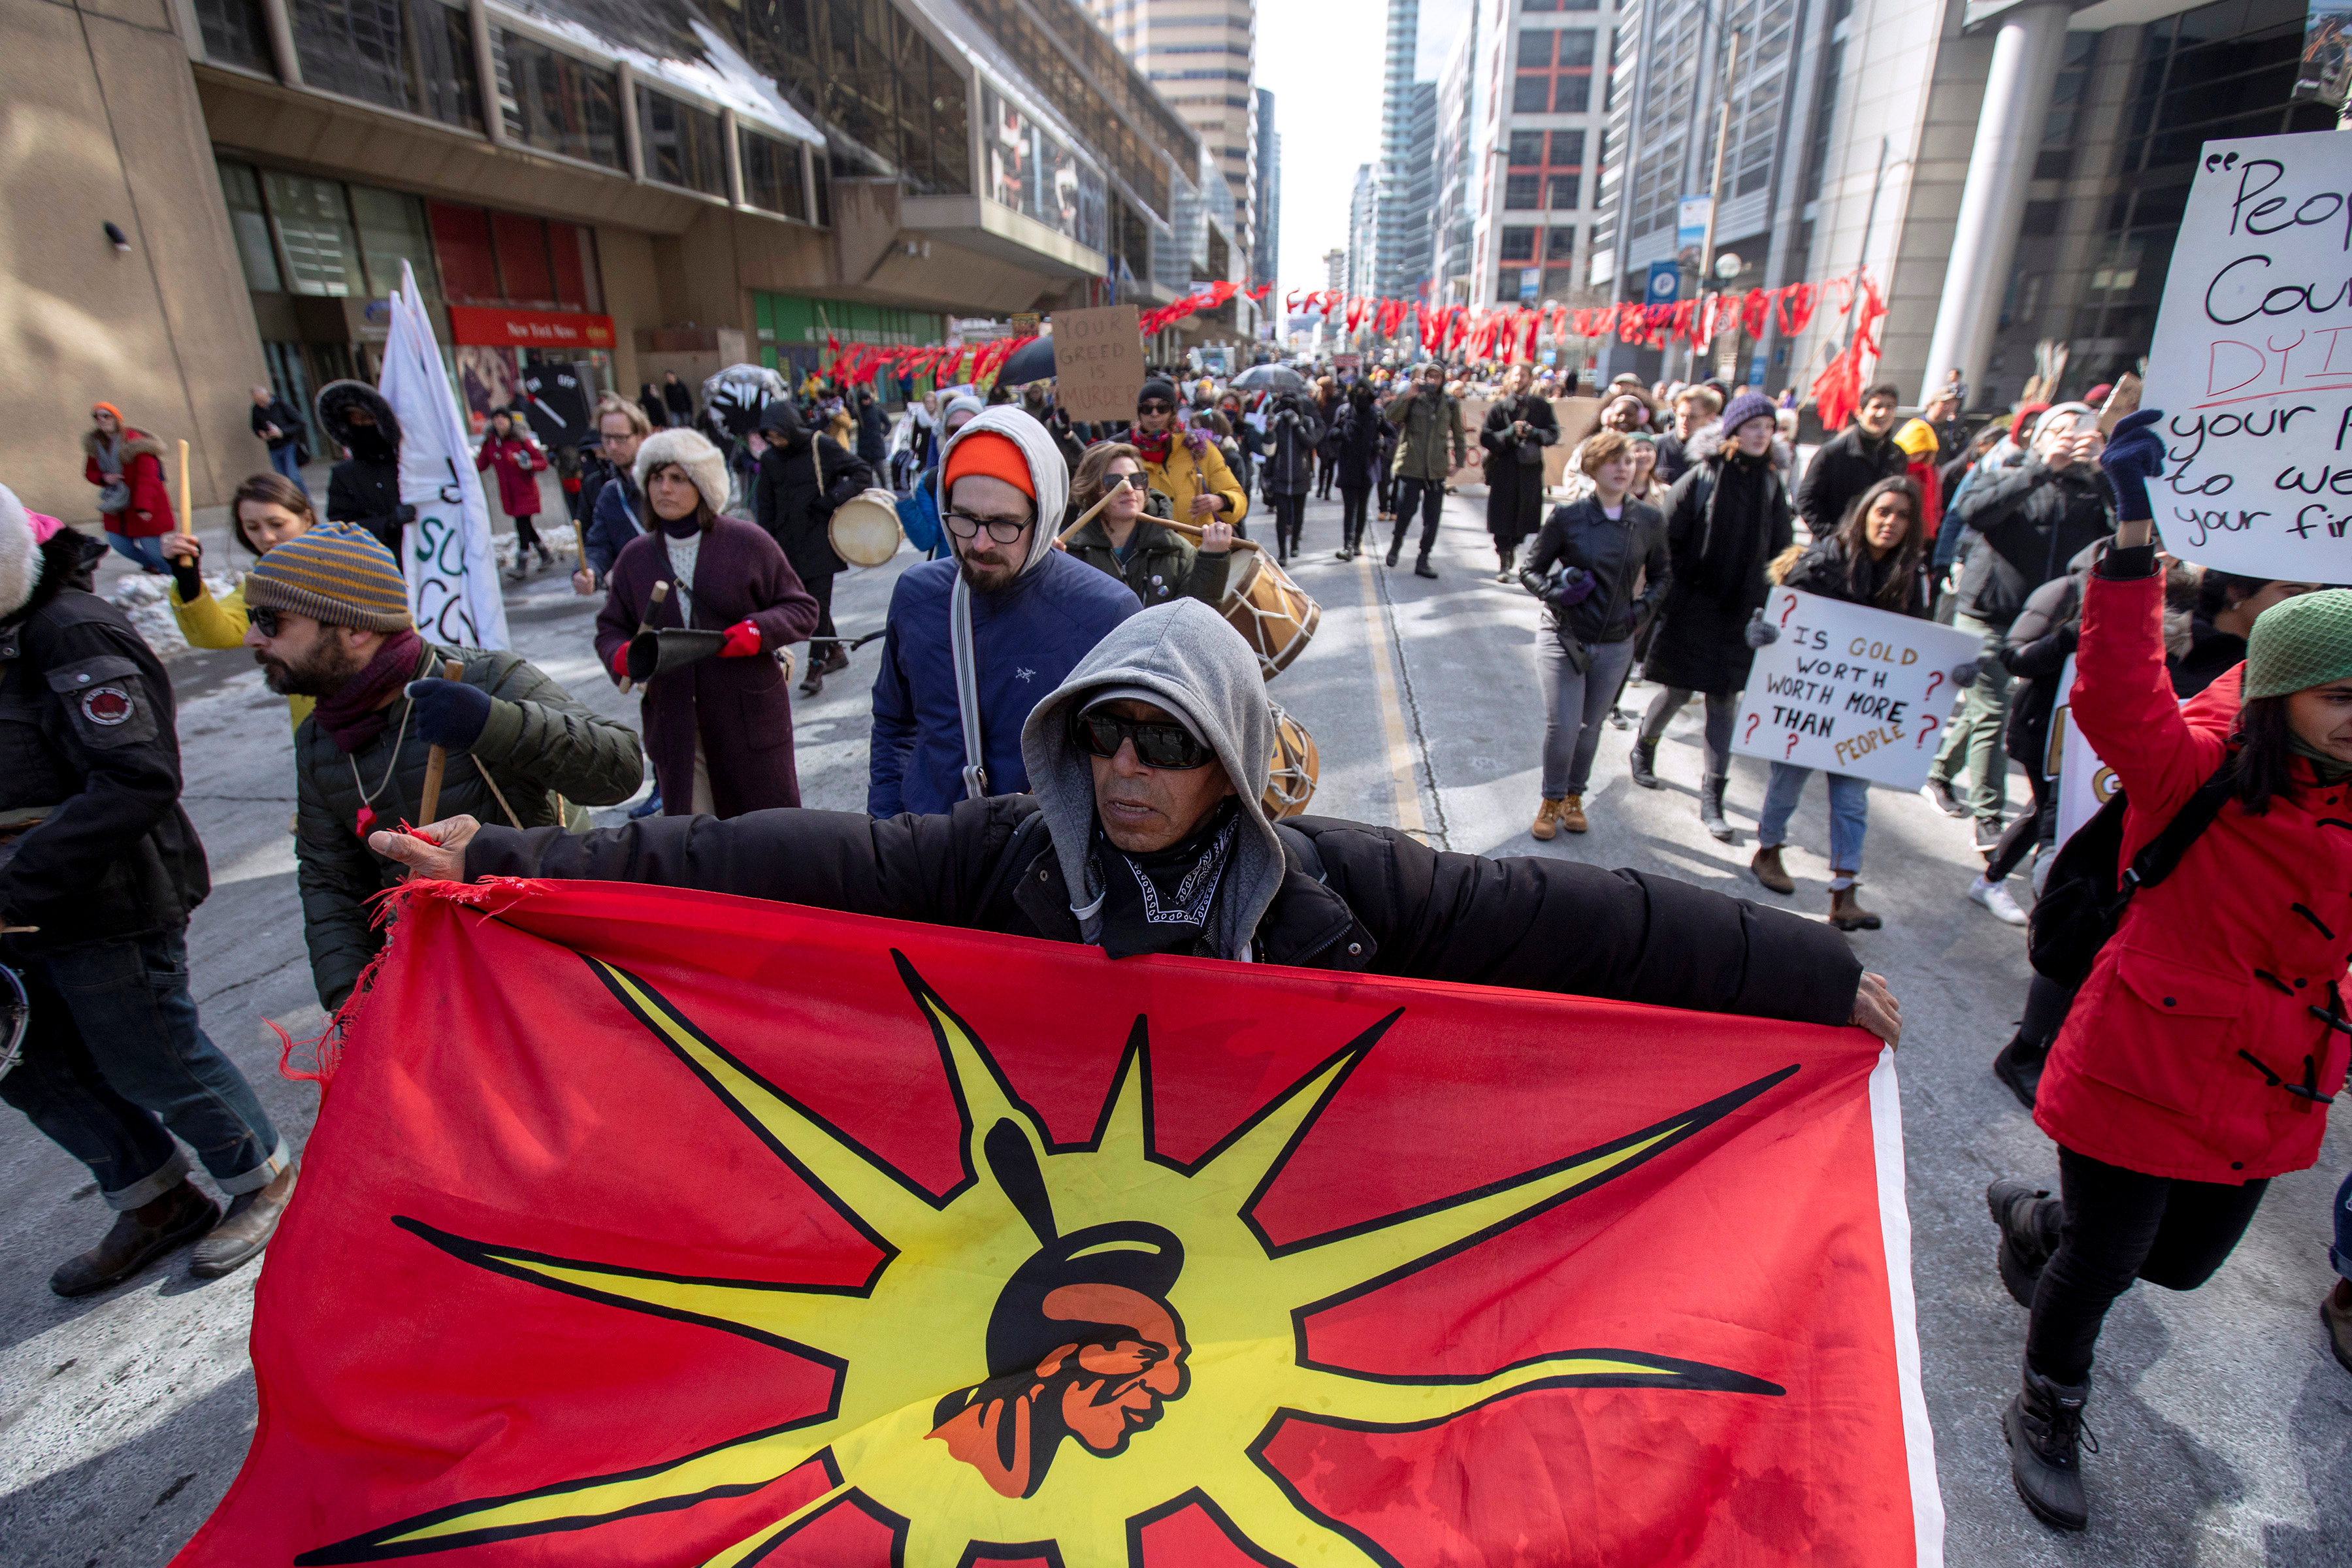 A protester holds a Mohawk Warrior Society flag as others march near the Prospectors & Developers Association of Canada (PDAC) convention to condemn mining practices in Toronto, Ontario, Canada March 1, 2020. REUTERS/Carlos Osorio